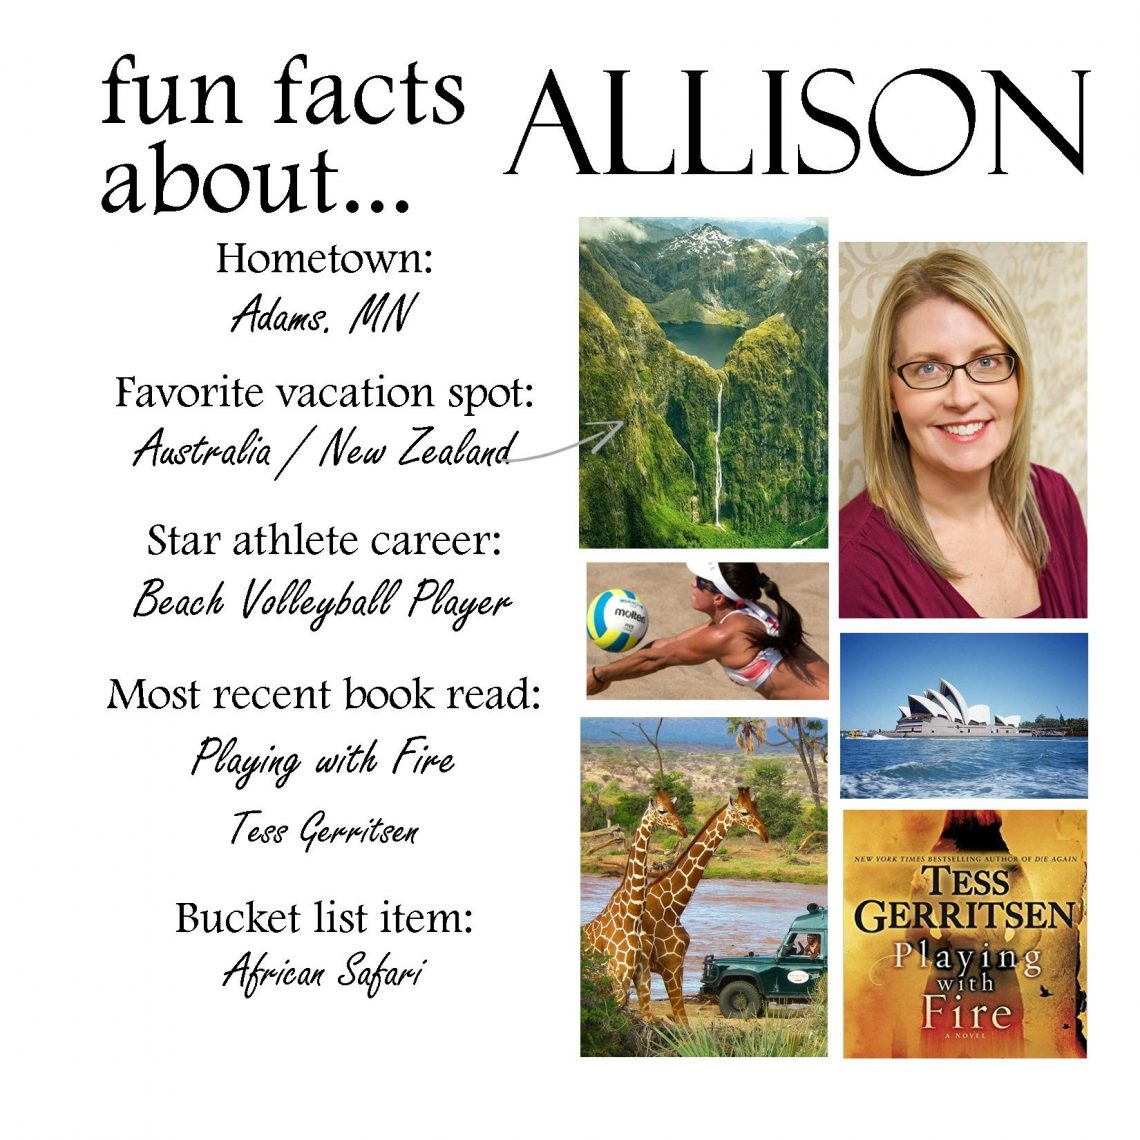 allison-fun-fact